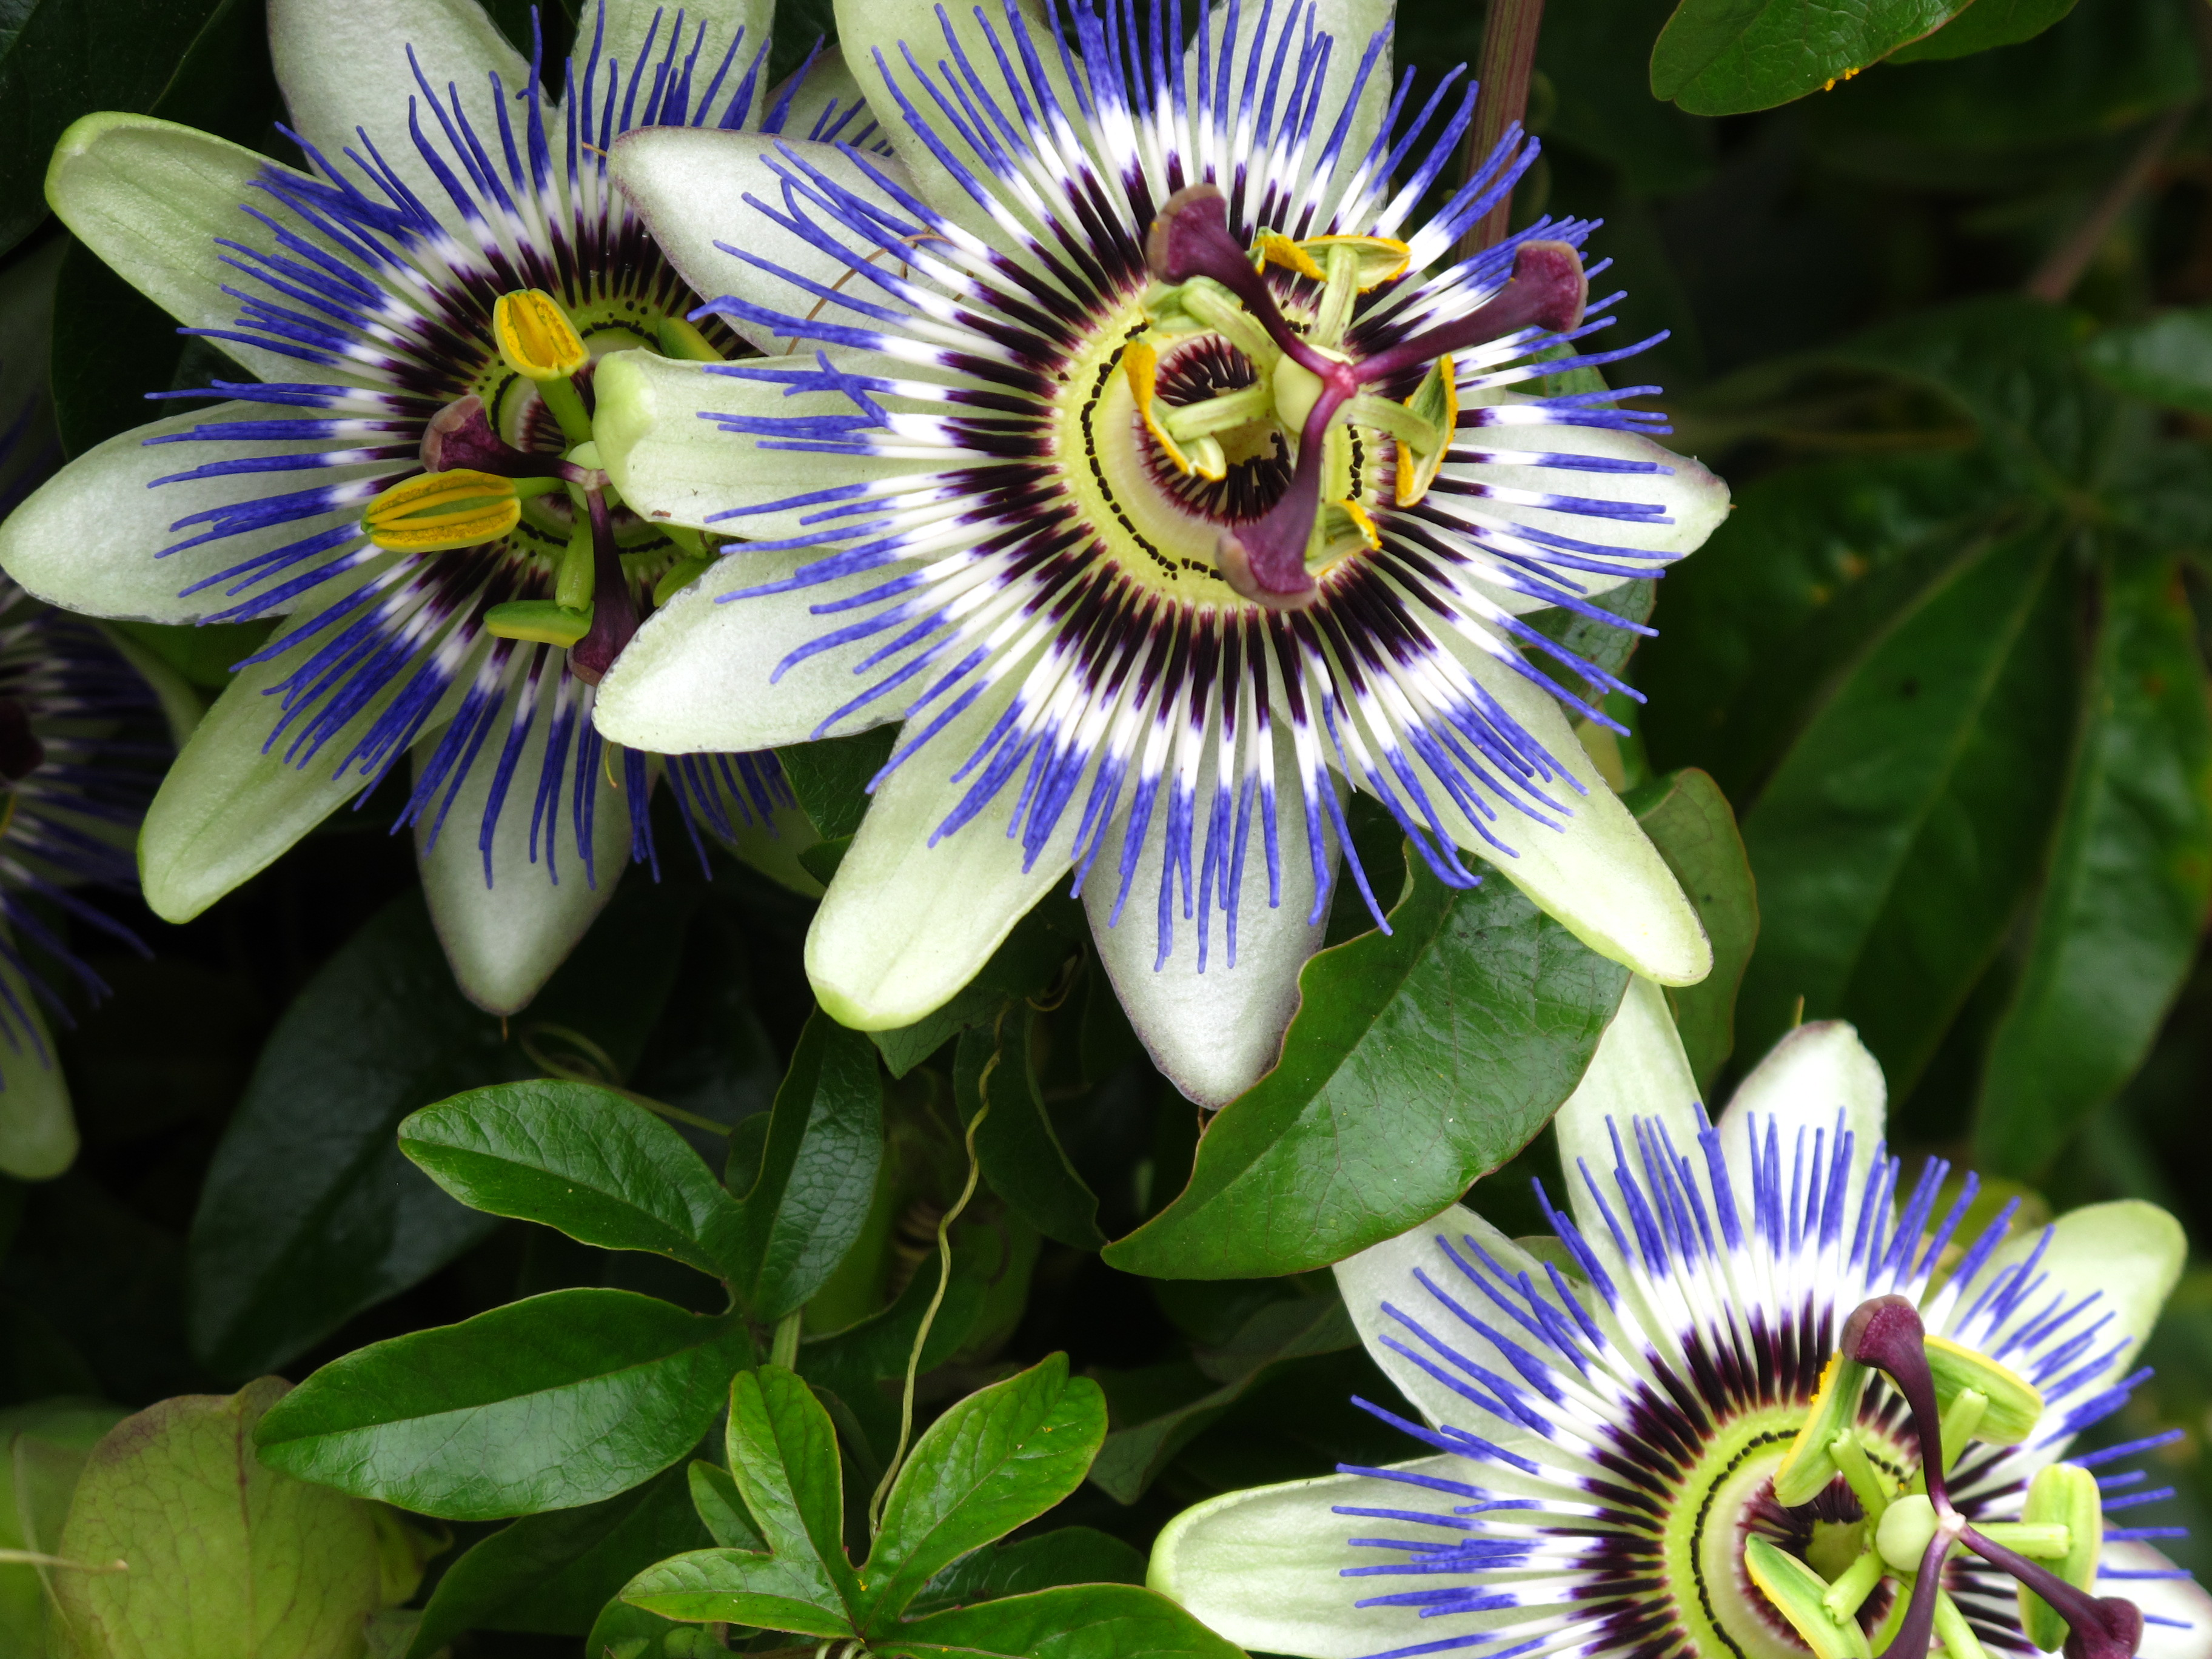 3648x2736 - Passion Flower Wallpapers 17